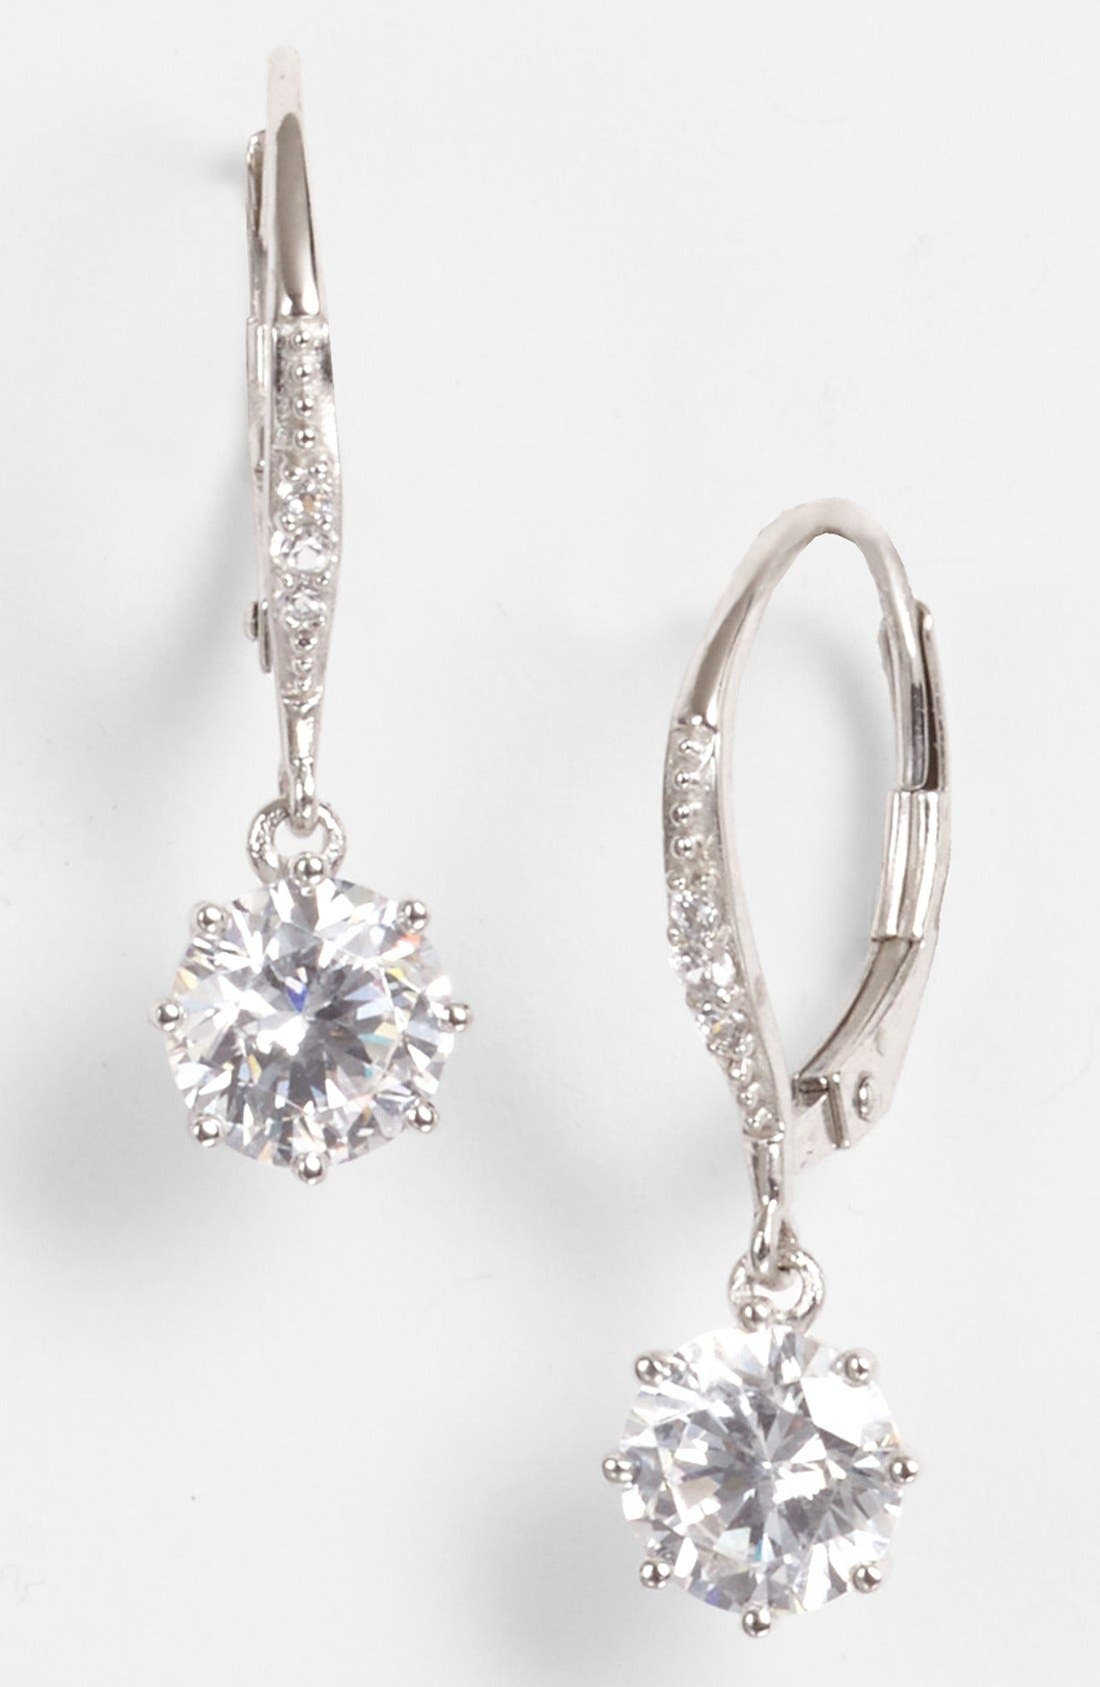 Main Image - Nordstrom Cubic Zirconia Drop Earrings (Special Purchase)